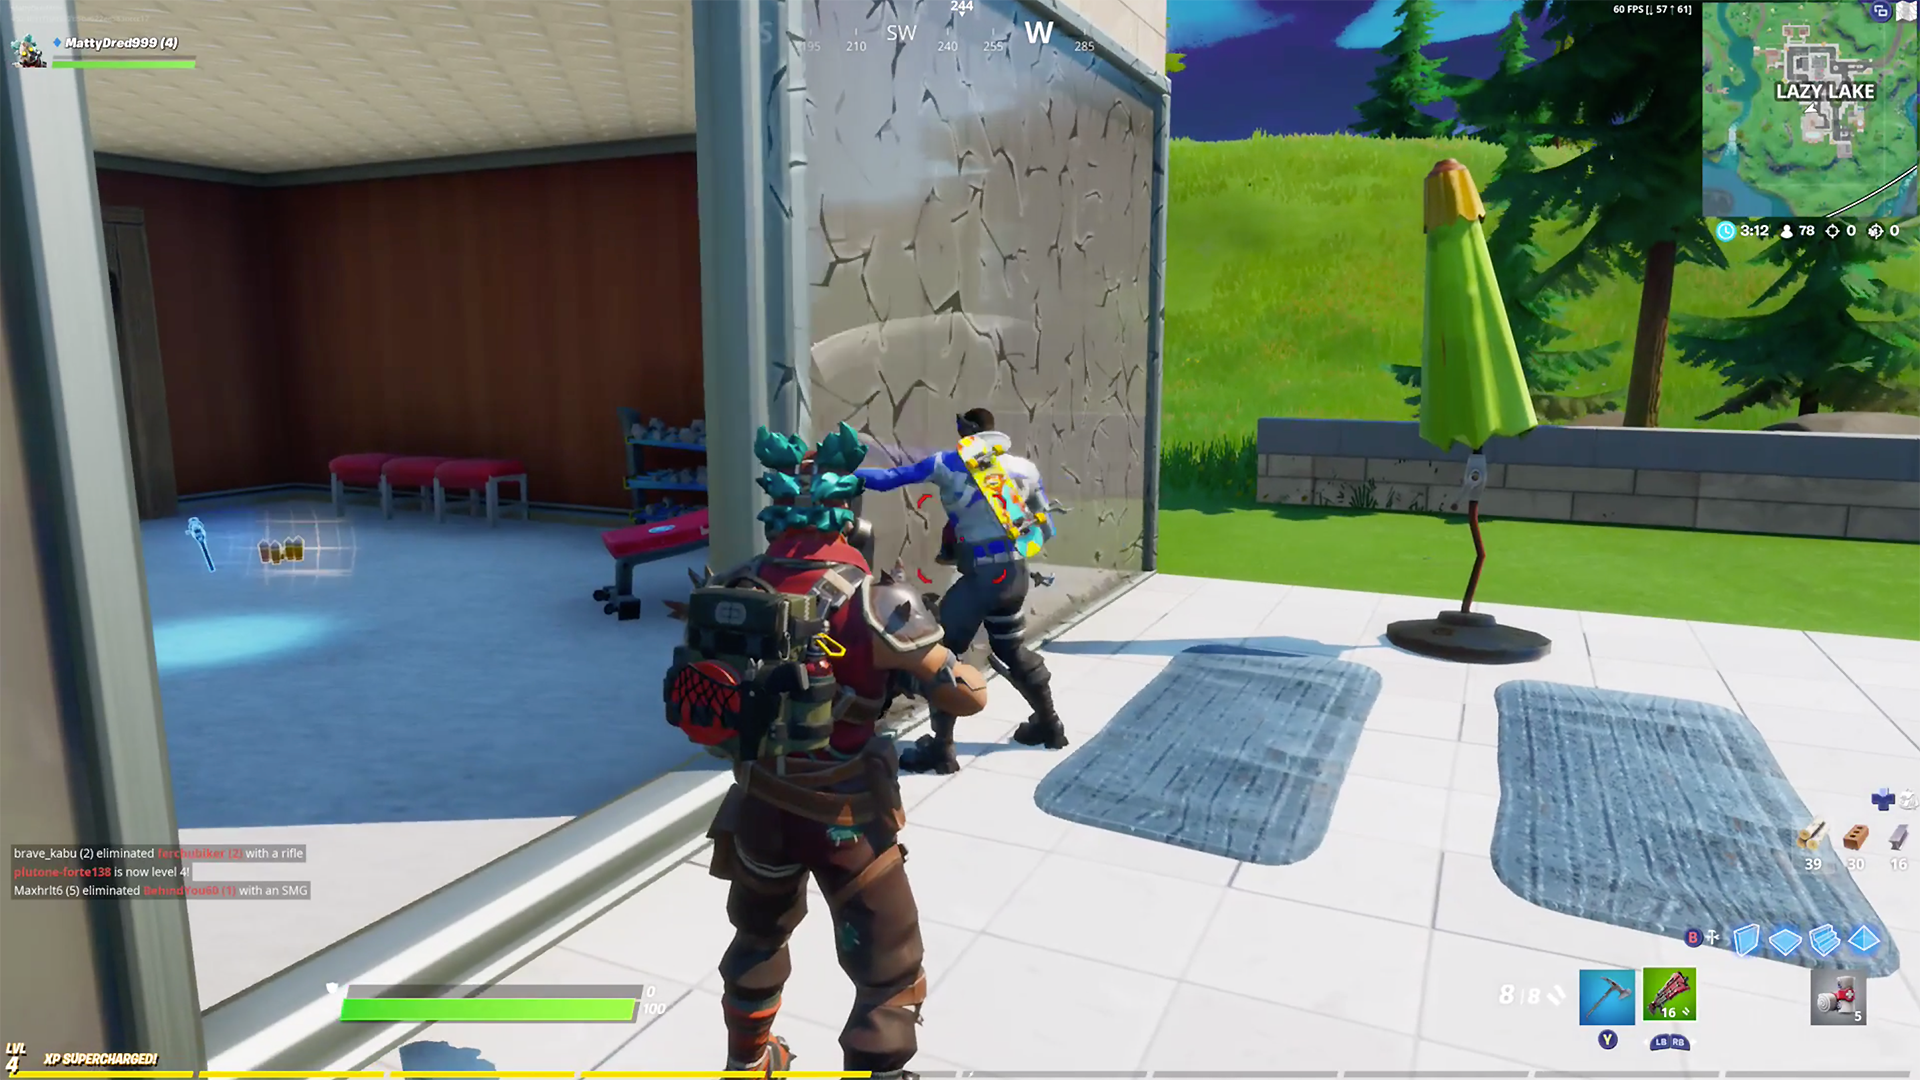 Yes There Are Bots In Fortnite Chapter 2 And They Are Awful